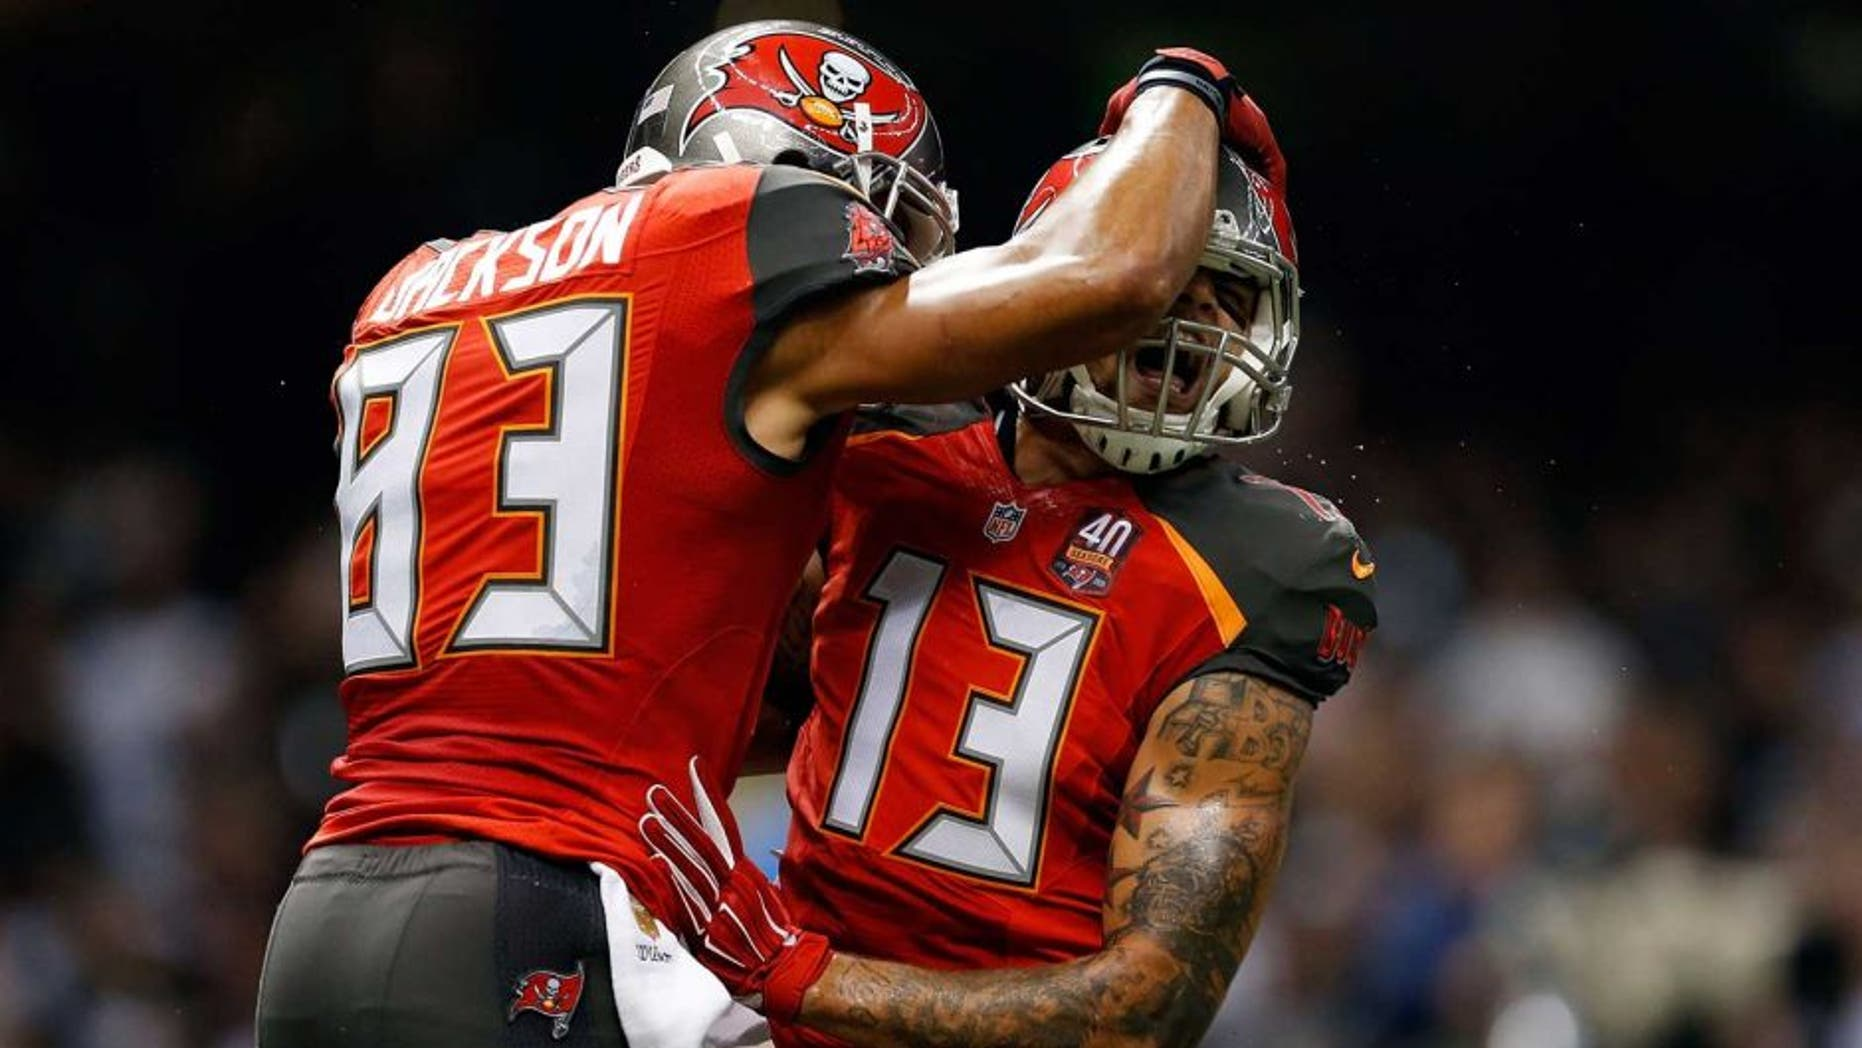 NEW ORLEANS, LA - SEPTEMBER 20: Mike Evans #13 celebrates with Vincent Jackson #83 of the Tampa Bay Buccaneers following his touchdown reception during the second quarter of a game against the New Orleans Saints at the Mercedes-Benz Superdome on September 20, 2015 in New Orleans, Louisiana. (Photo by Wesley Hitt/Getty Images)